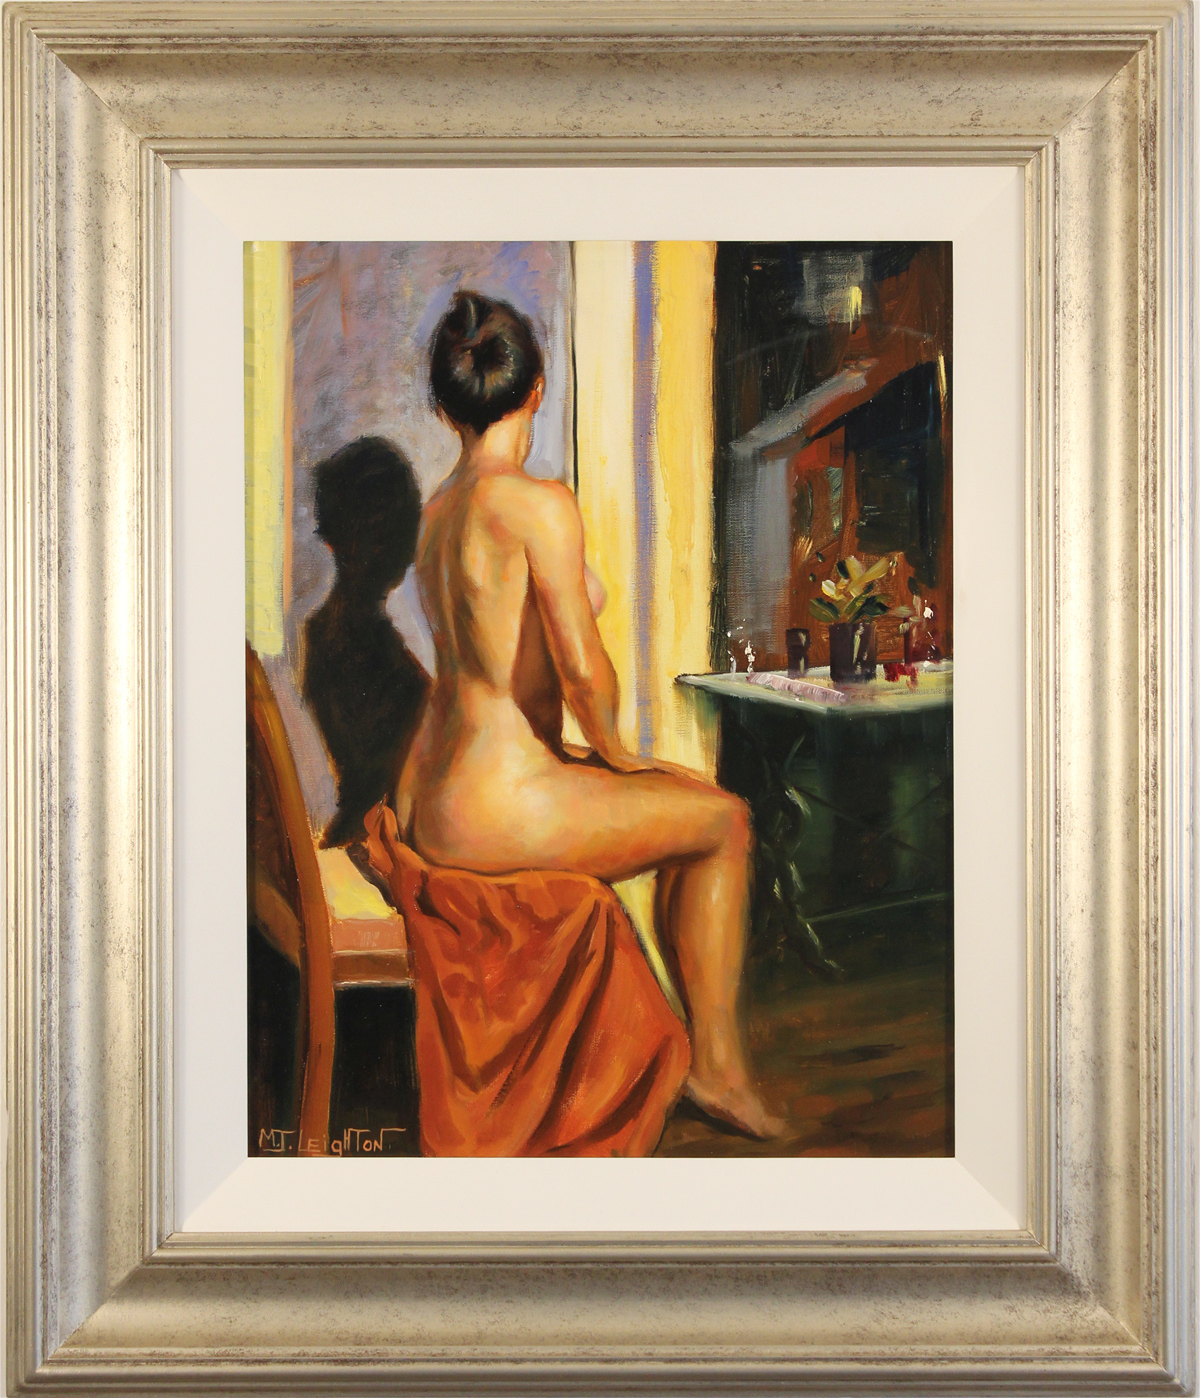 Martin Leighton, Original oil painting on canvas, Elegance, click to enlarge